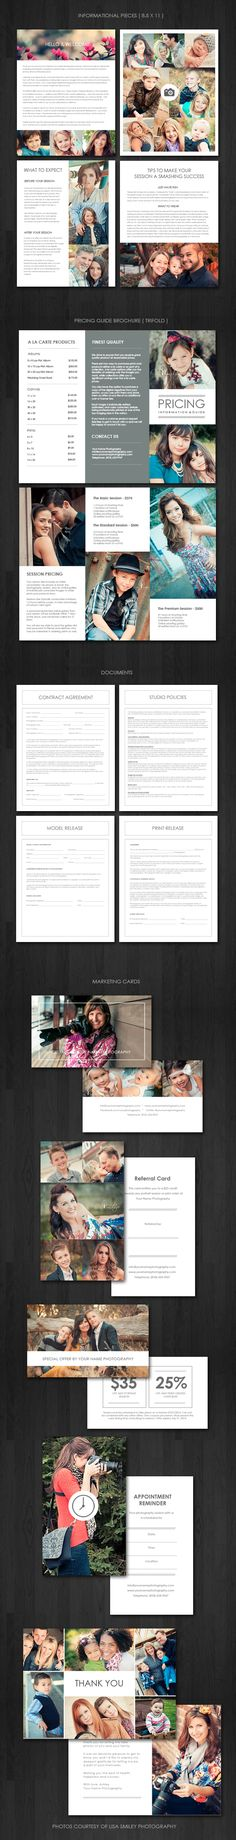 The Ultimate Portrait Photography Marketing Kit - Welcome Packet Templates